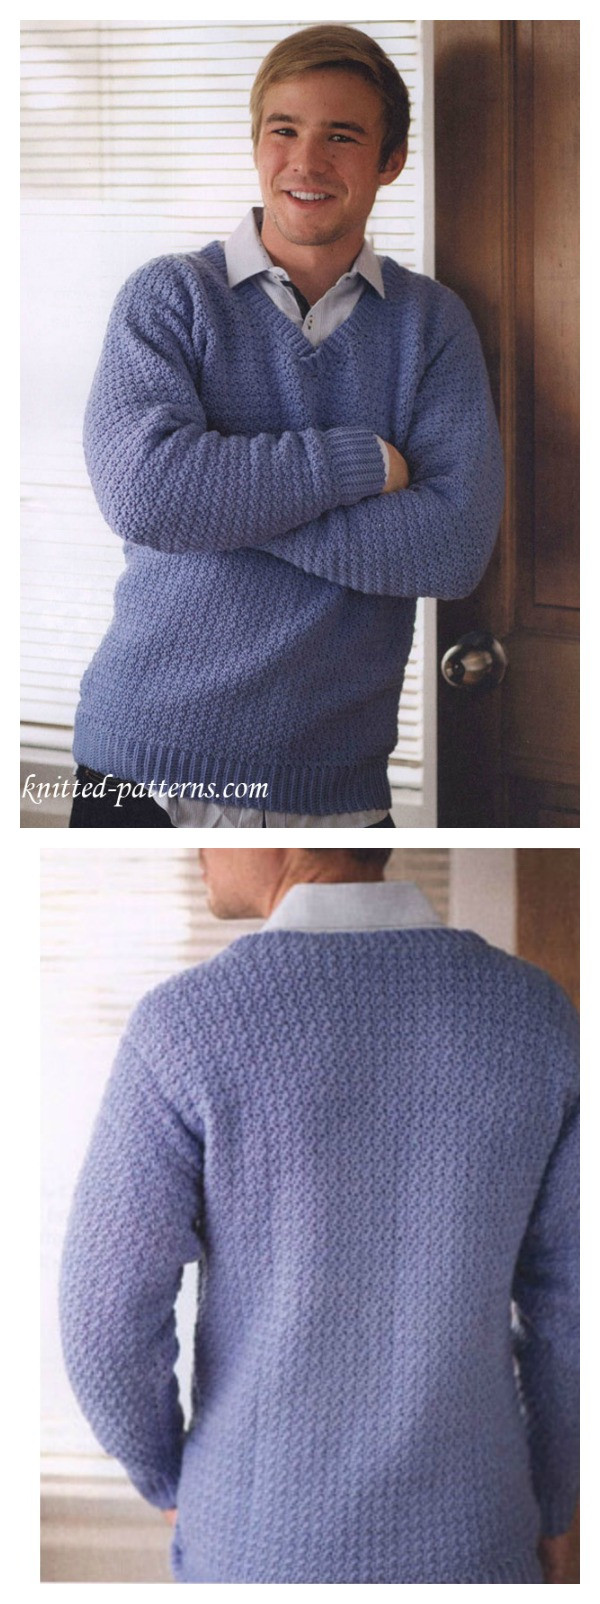 Beautiful 10 Free Men S Crochet Patterns for Holiday Gift Ideas Crochet Mens Sweater Of Awesome 15 Crochet Men Sweater Patterns 2017 Crochet Mens Sweater